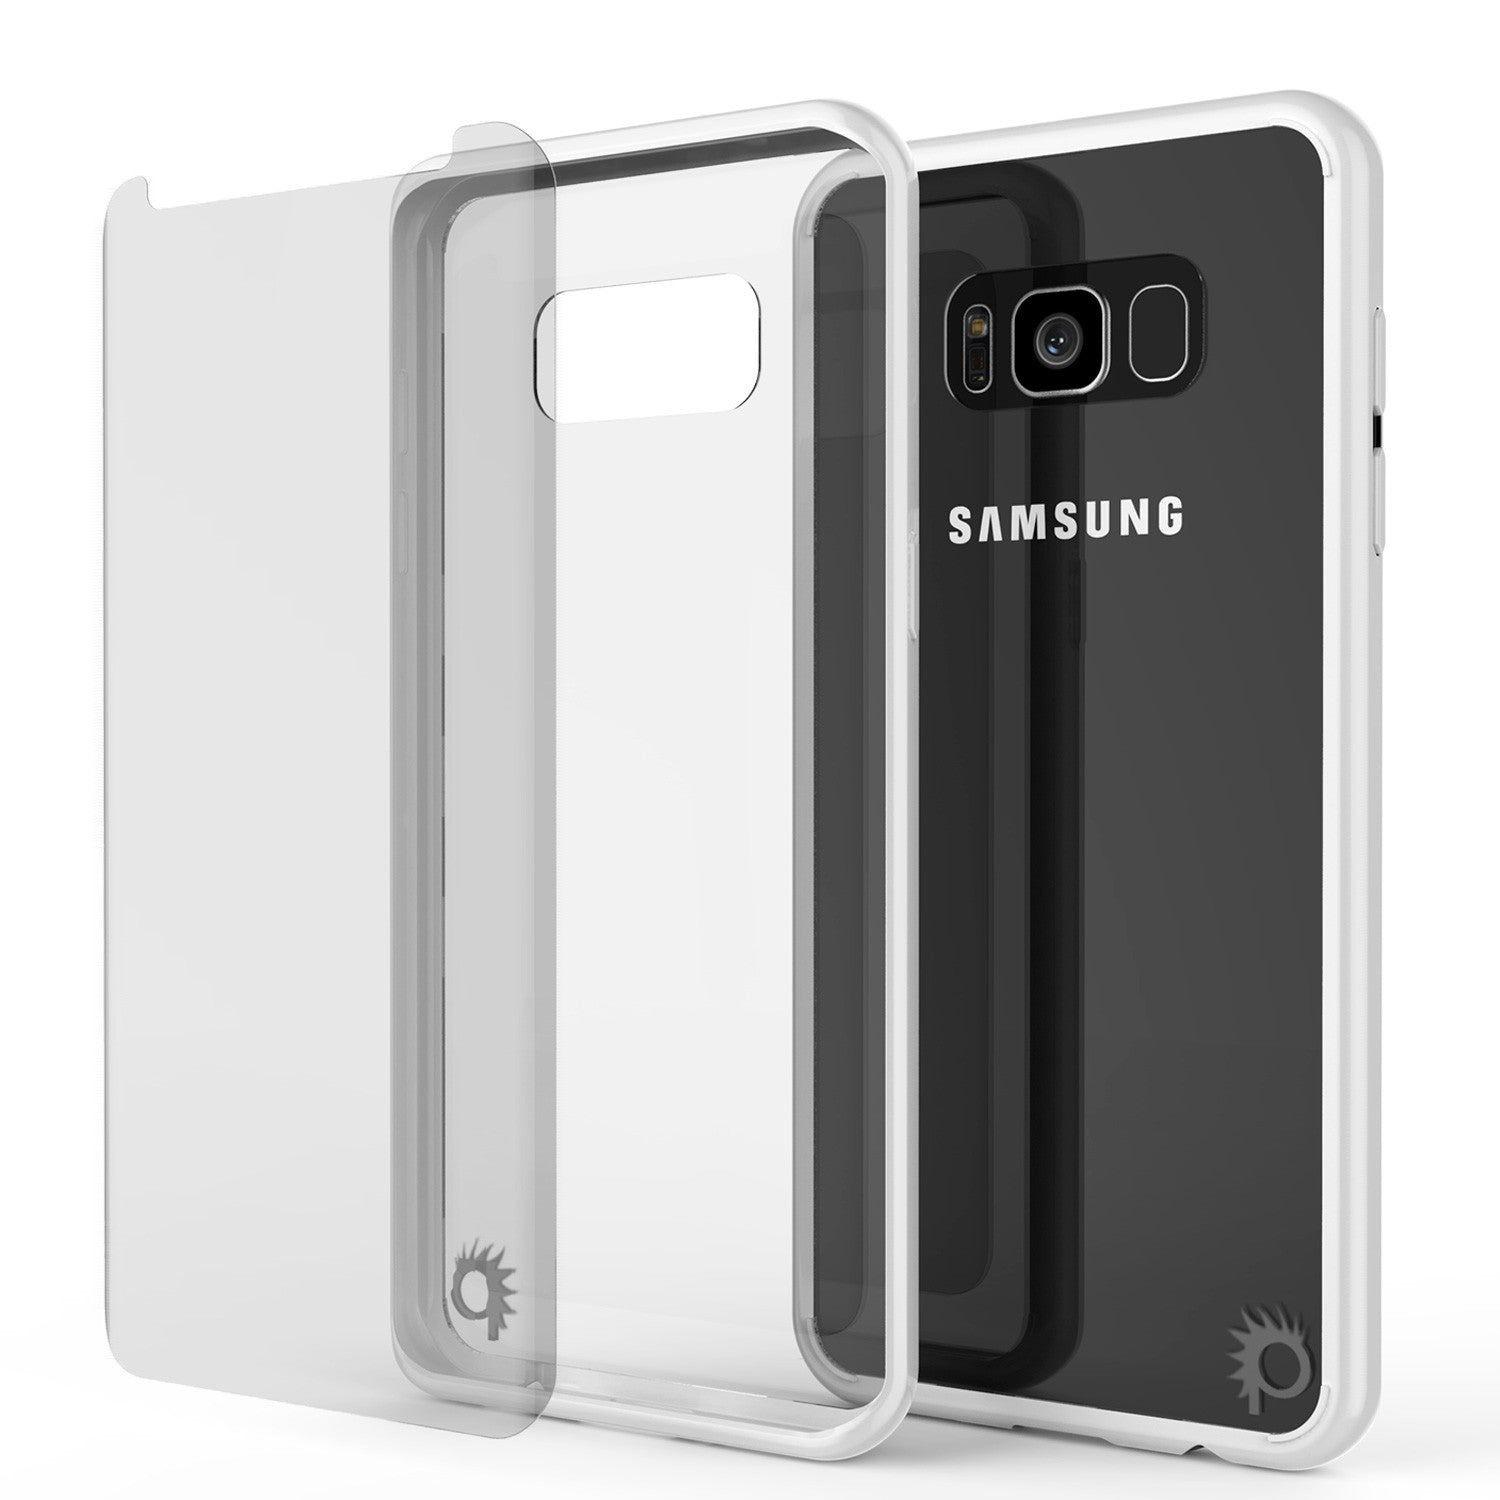 S8 Case Punkcase® LUCID 2.0 White Series w/ PUNK SHIELD Screen Protector | Ultra Fit